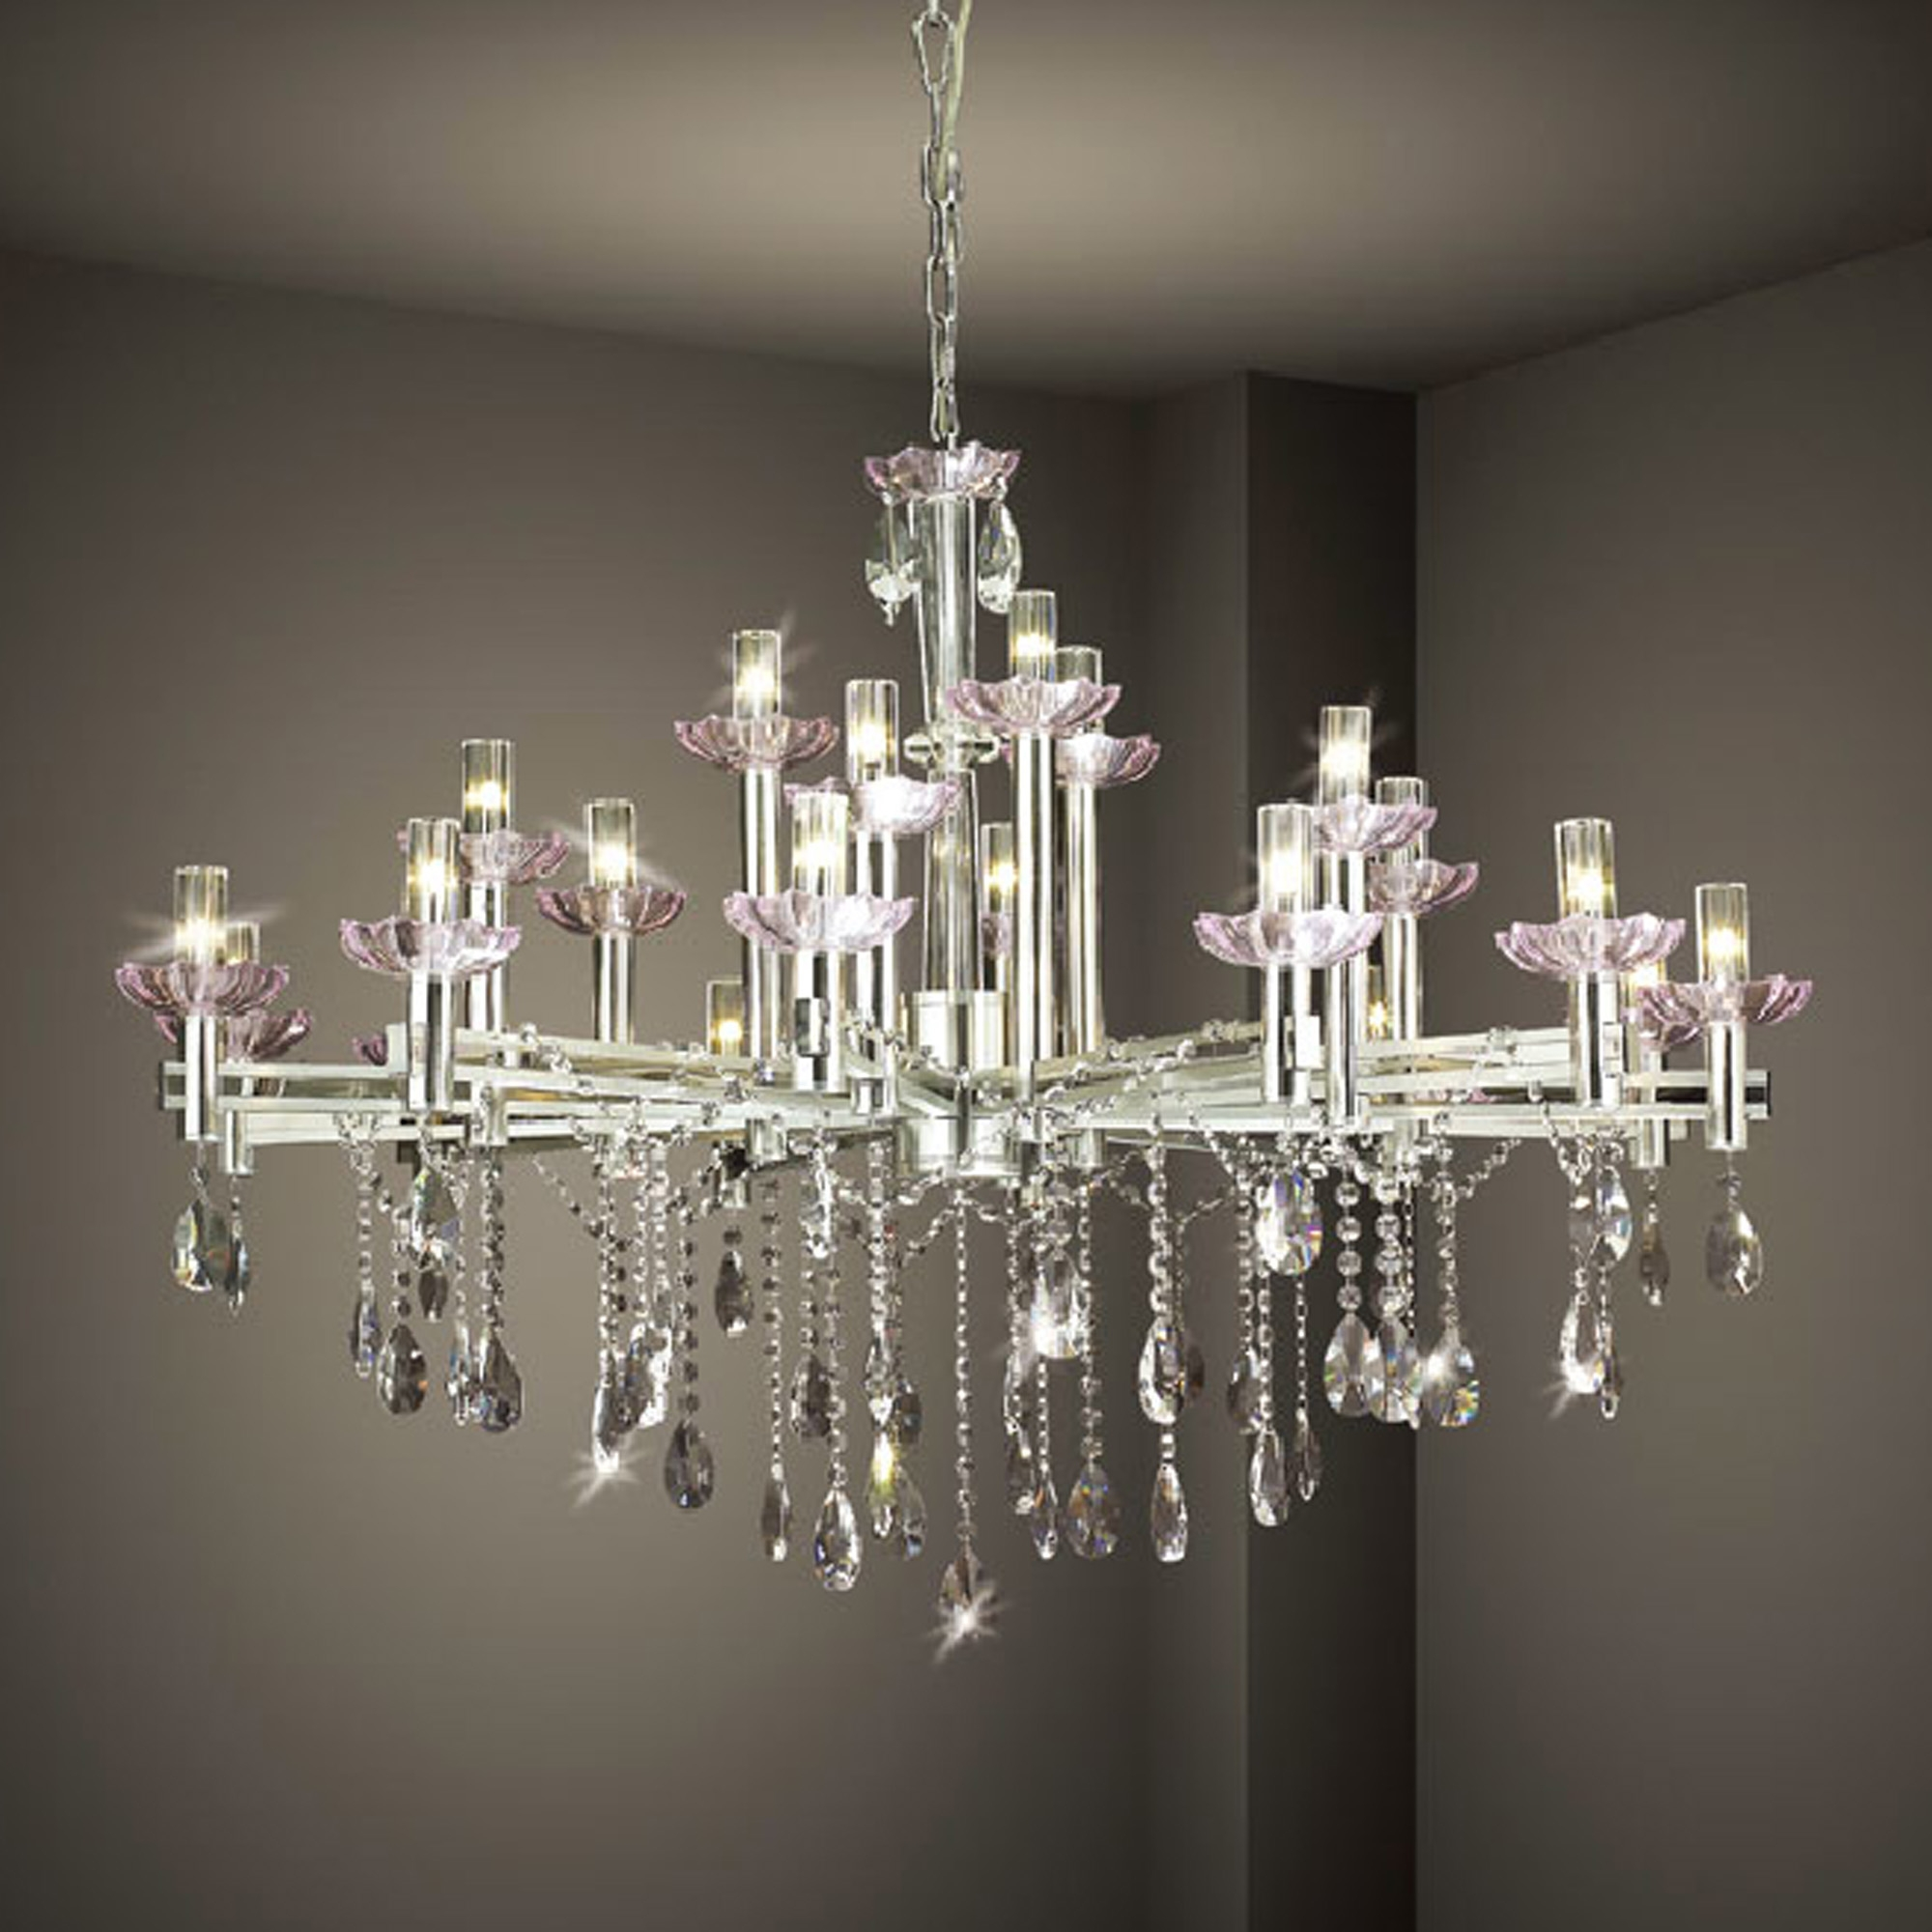 Chandelier Inspiring White Modern Chandelier White Antique With White And Crystal Chandeliers (Image 10 of 25)